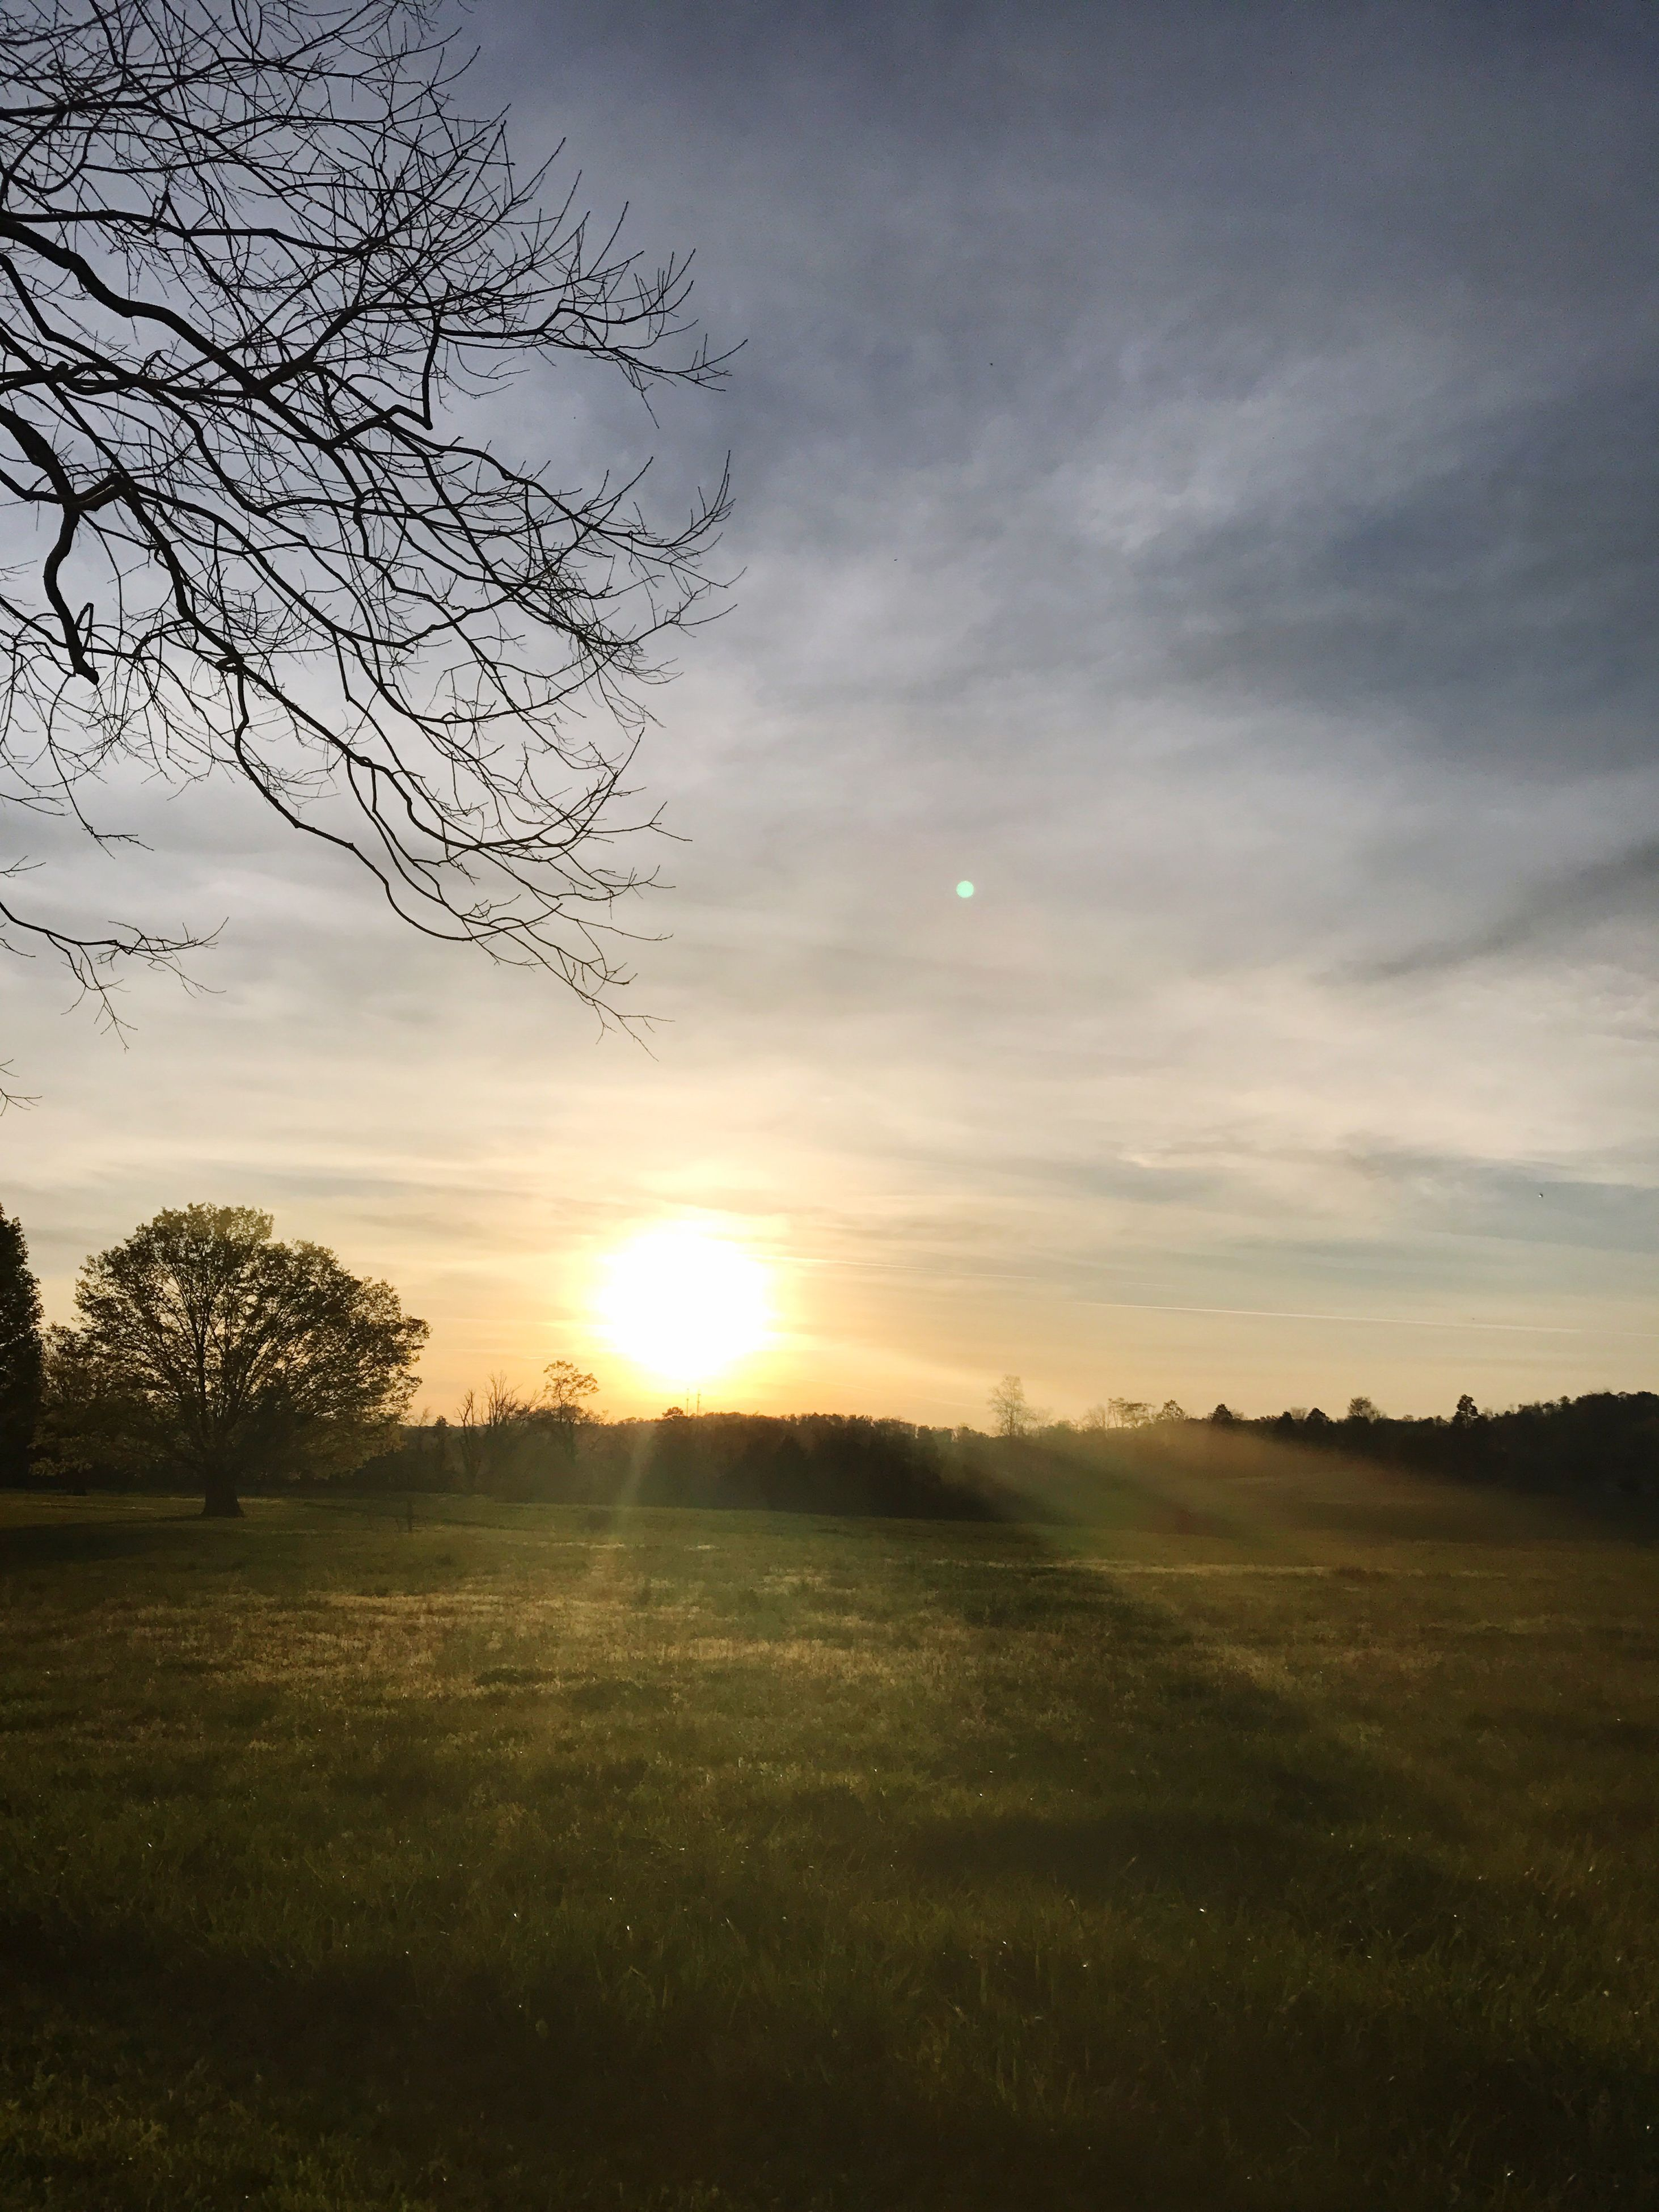 sunset, nature, beauty in nature, sky, no people, tranquility, field, outdoors, tree, day